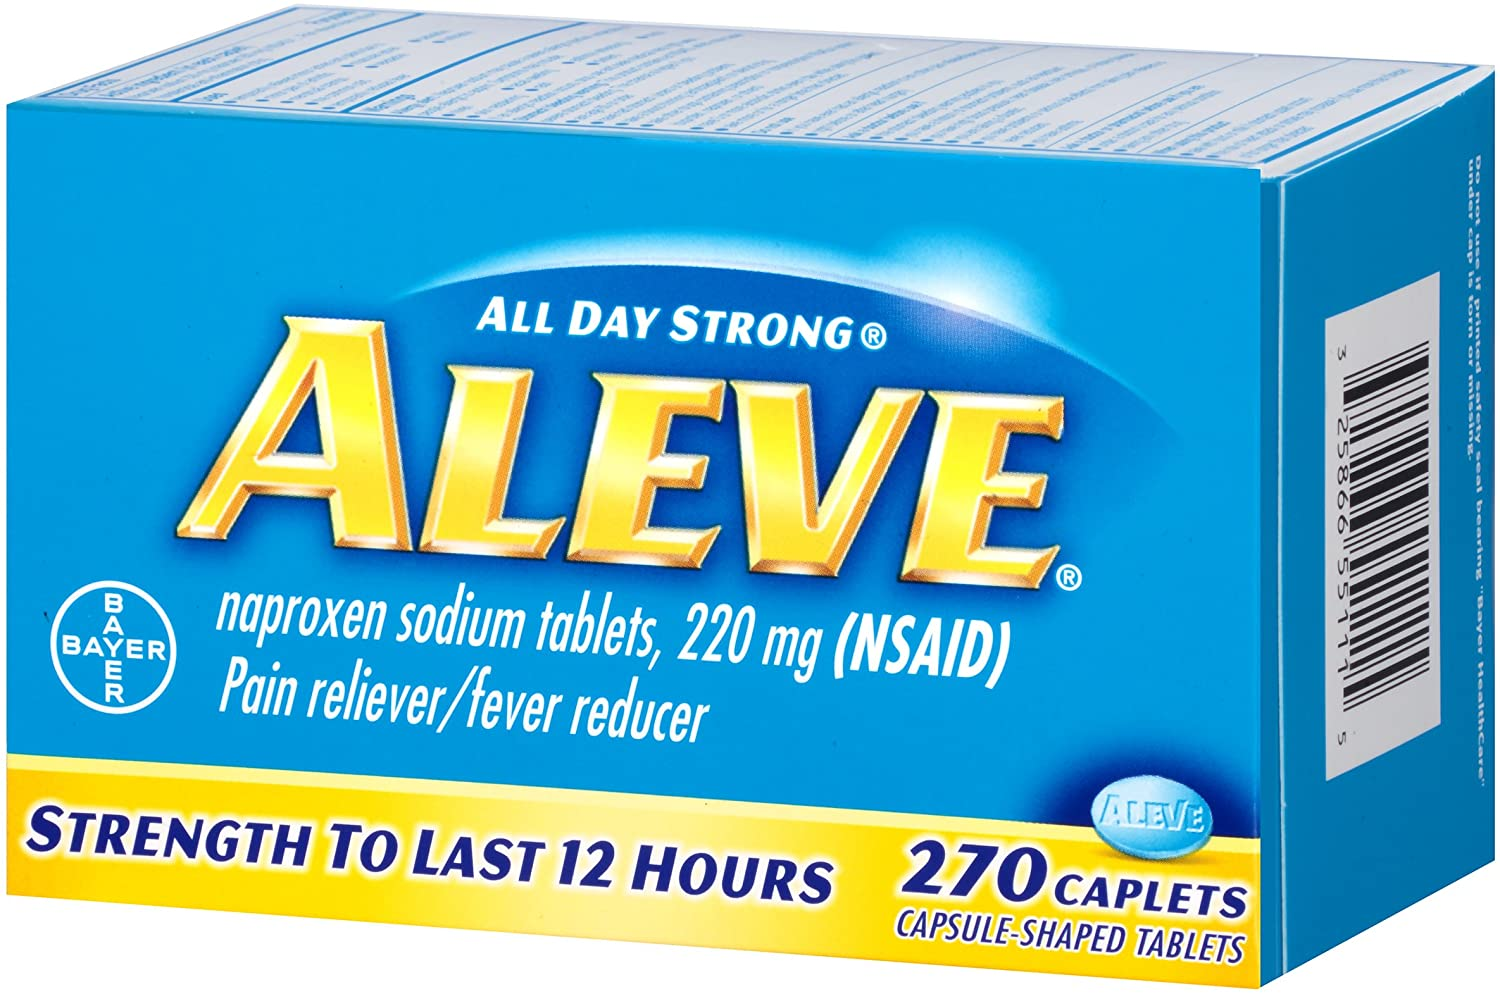 Is Aleve Ibuprofen